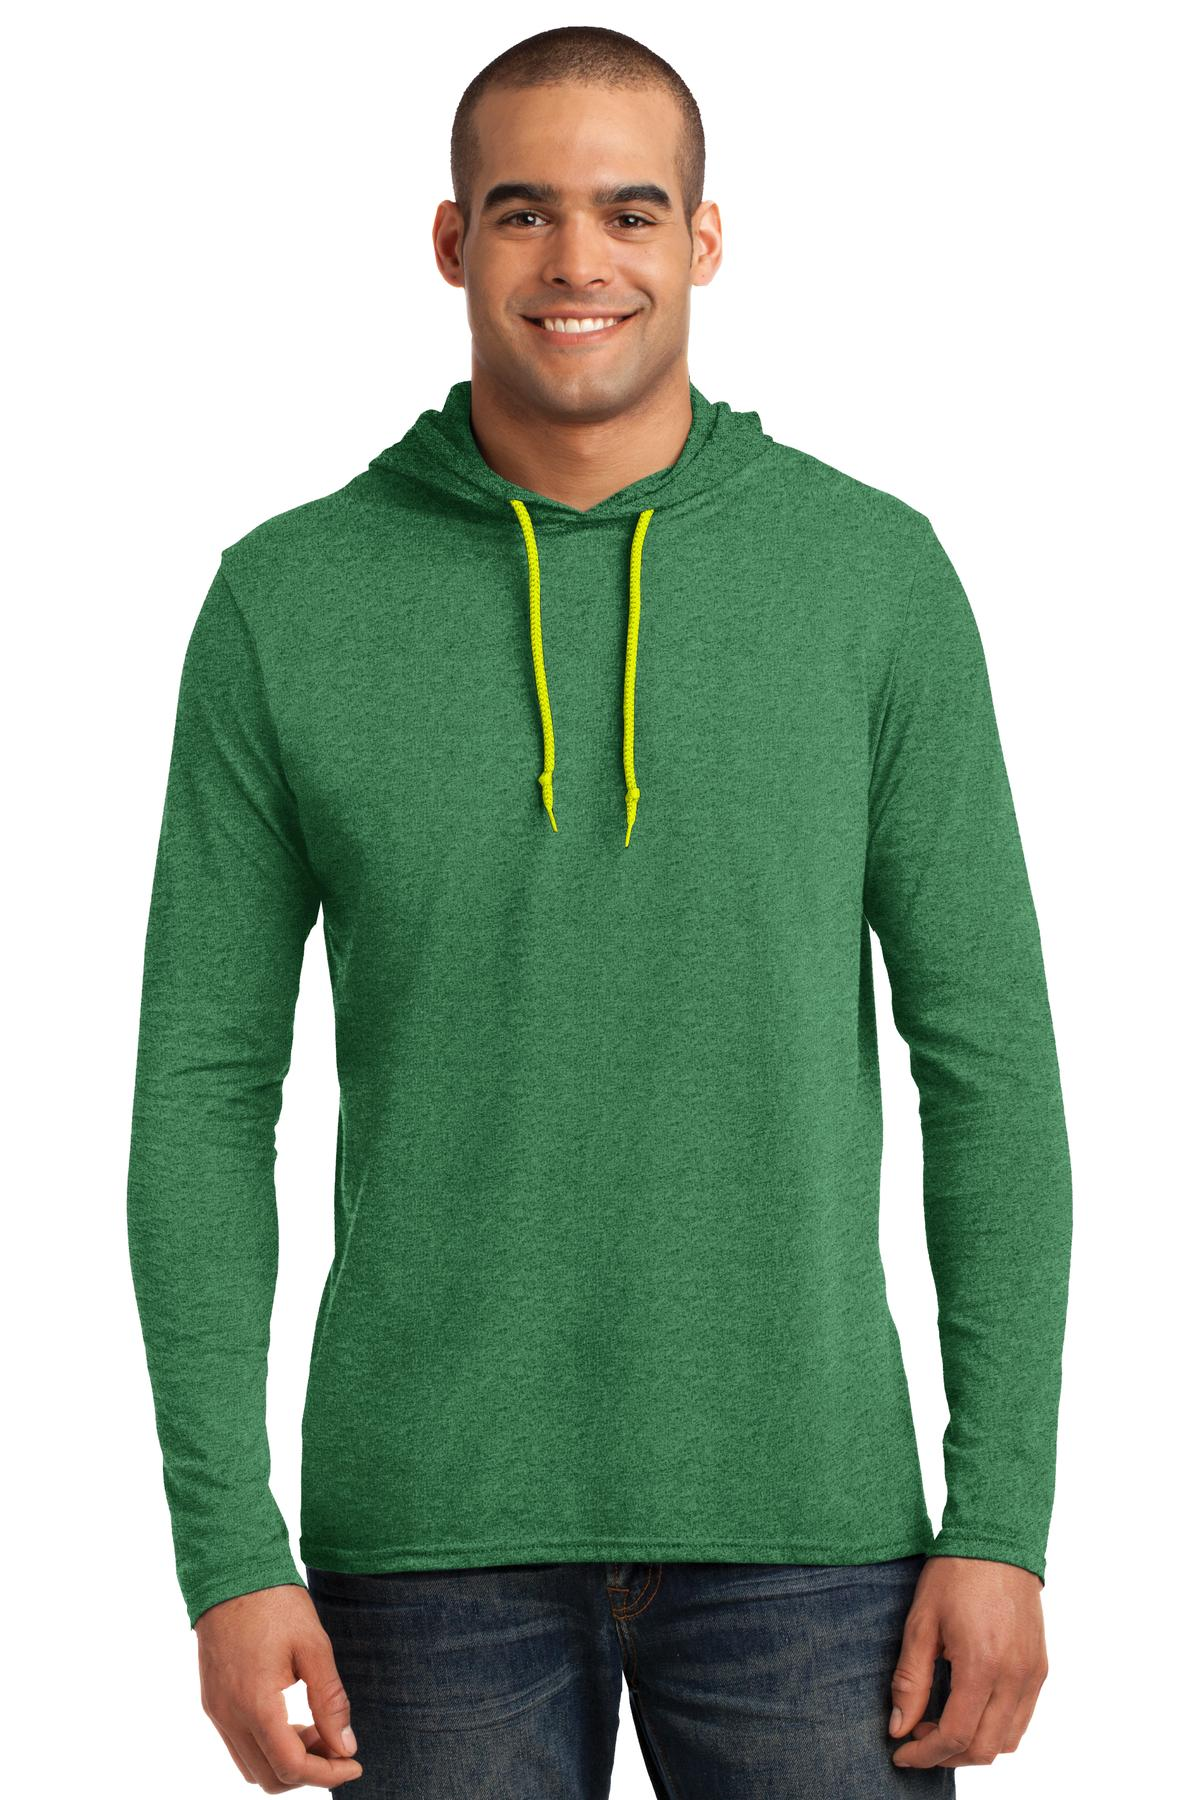 Anvil ®  100% Combed Ring Spun Cotton Long Sleeve Hooded T-Shirt. 987 - Heather Green/ Neon Yellow